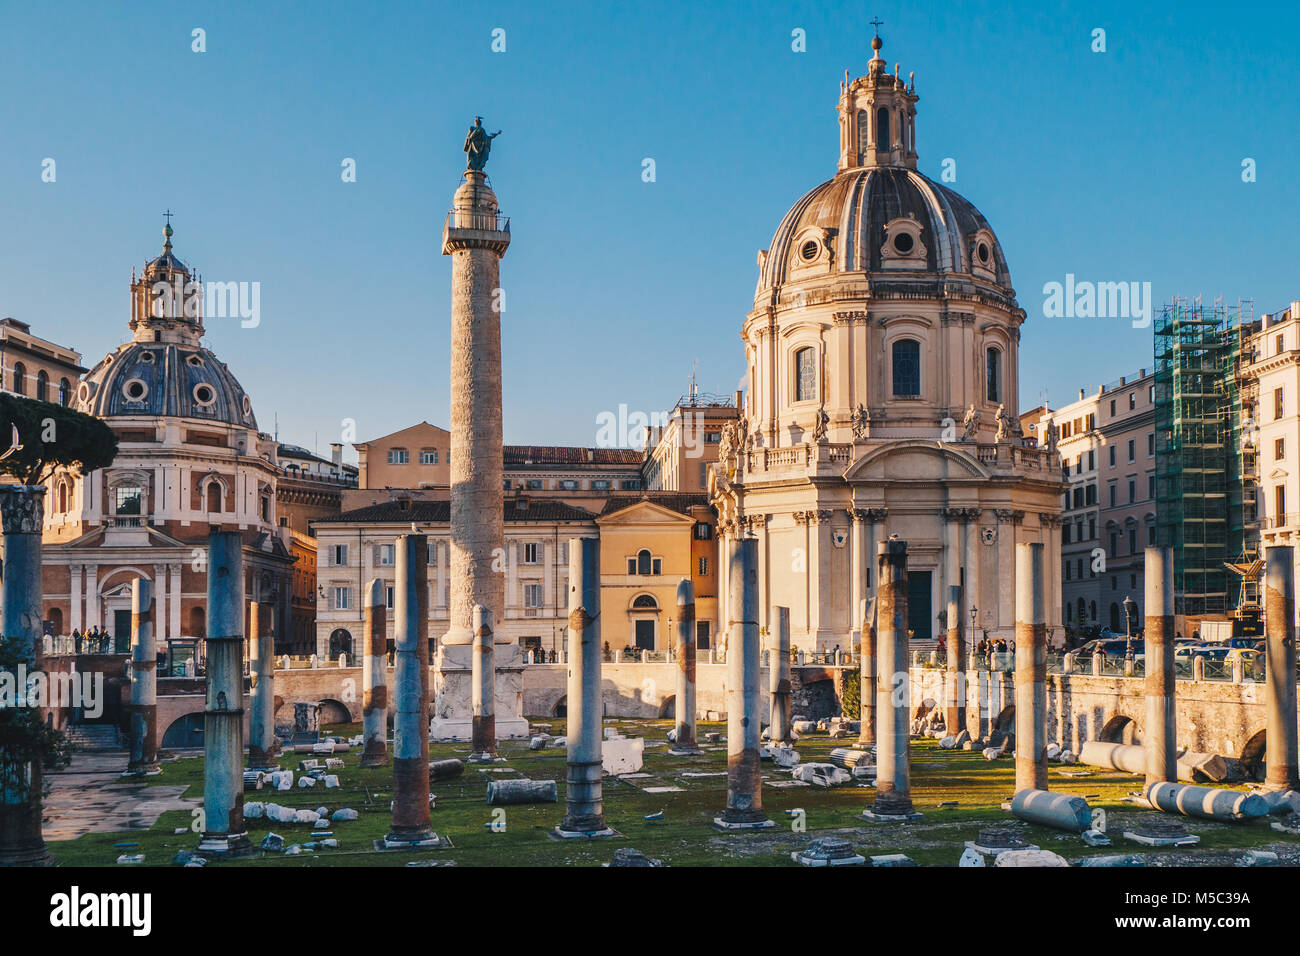 Trajan's Forum at sunrise in Rome, Italy near the Roman Forum Stock Photo